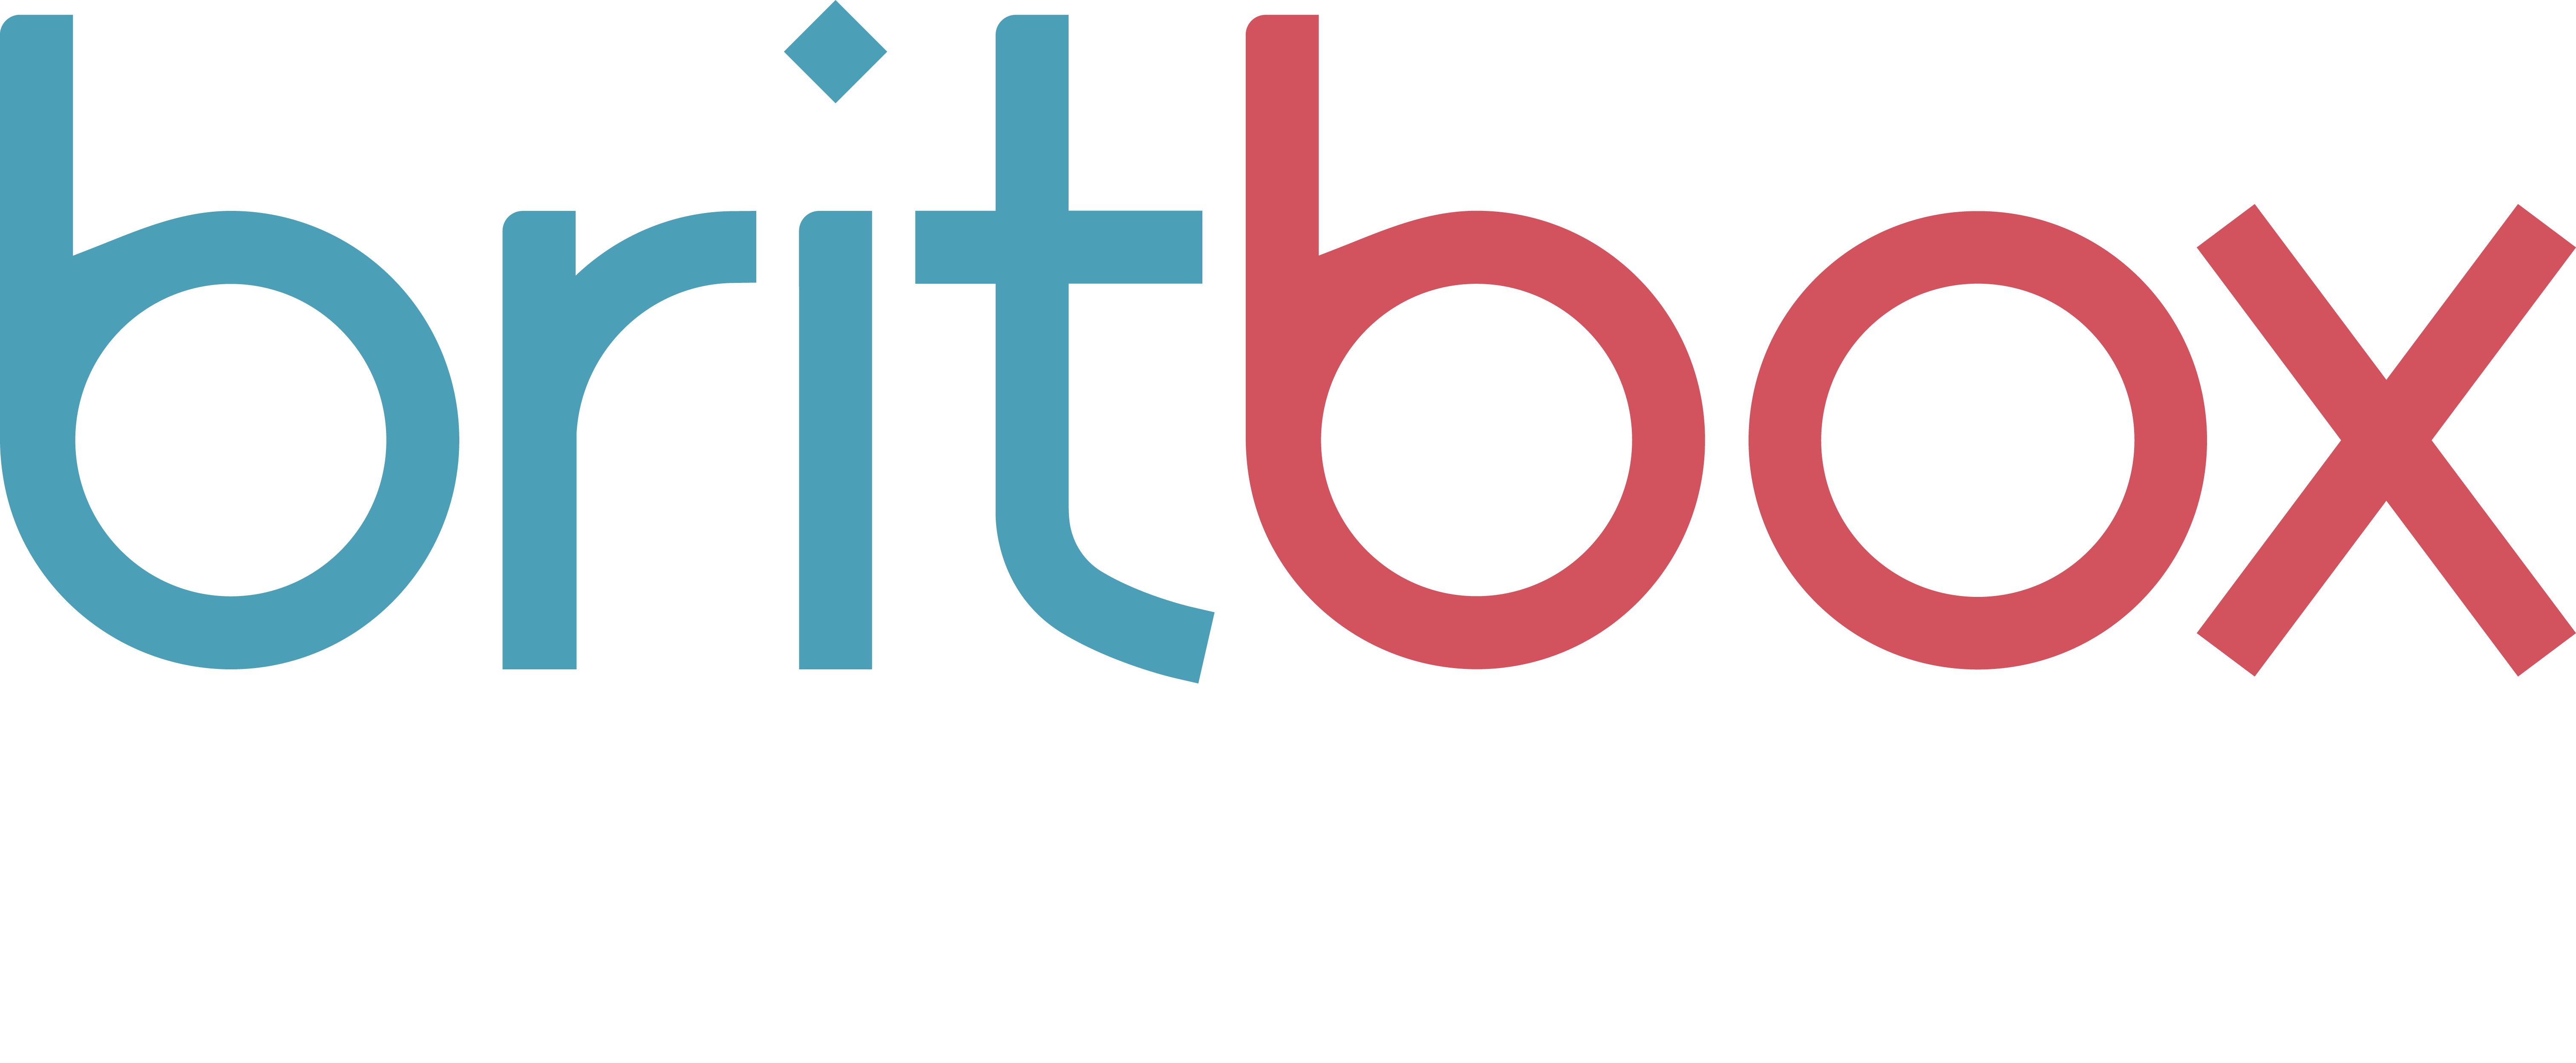 BritBox Help Center home page